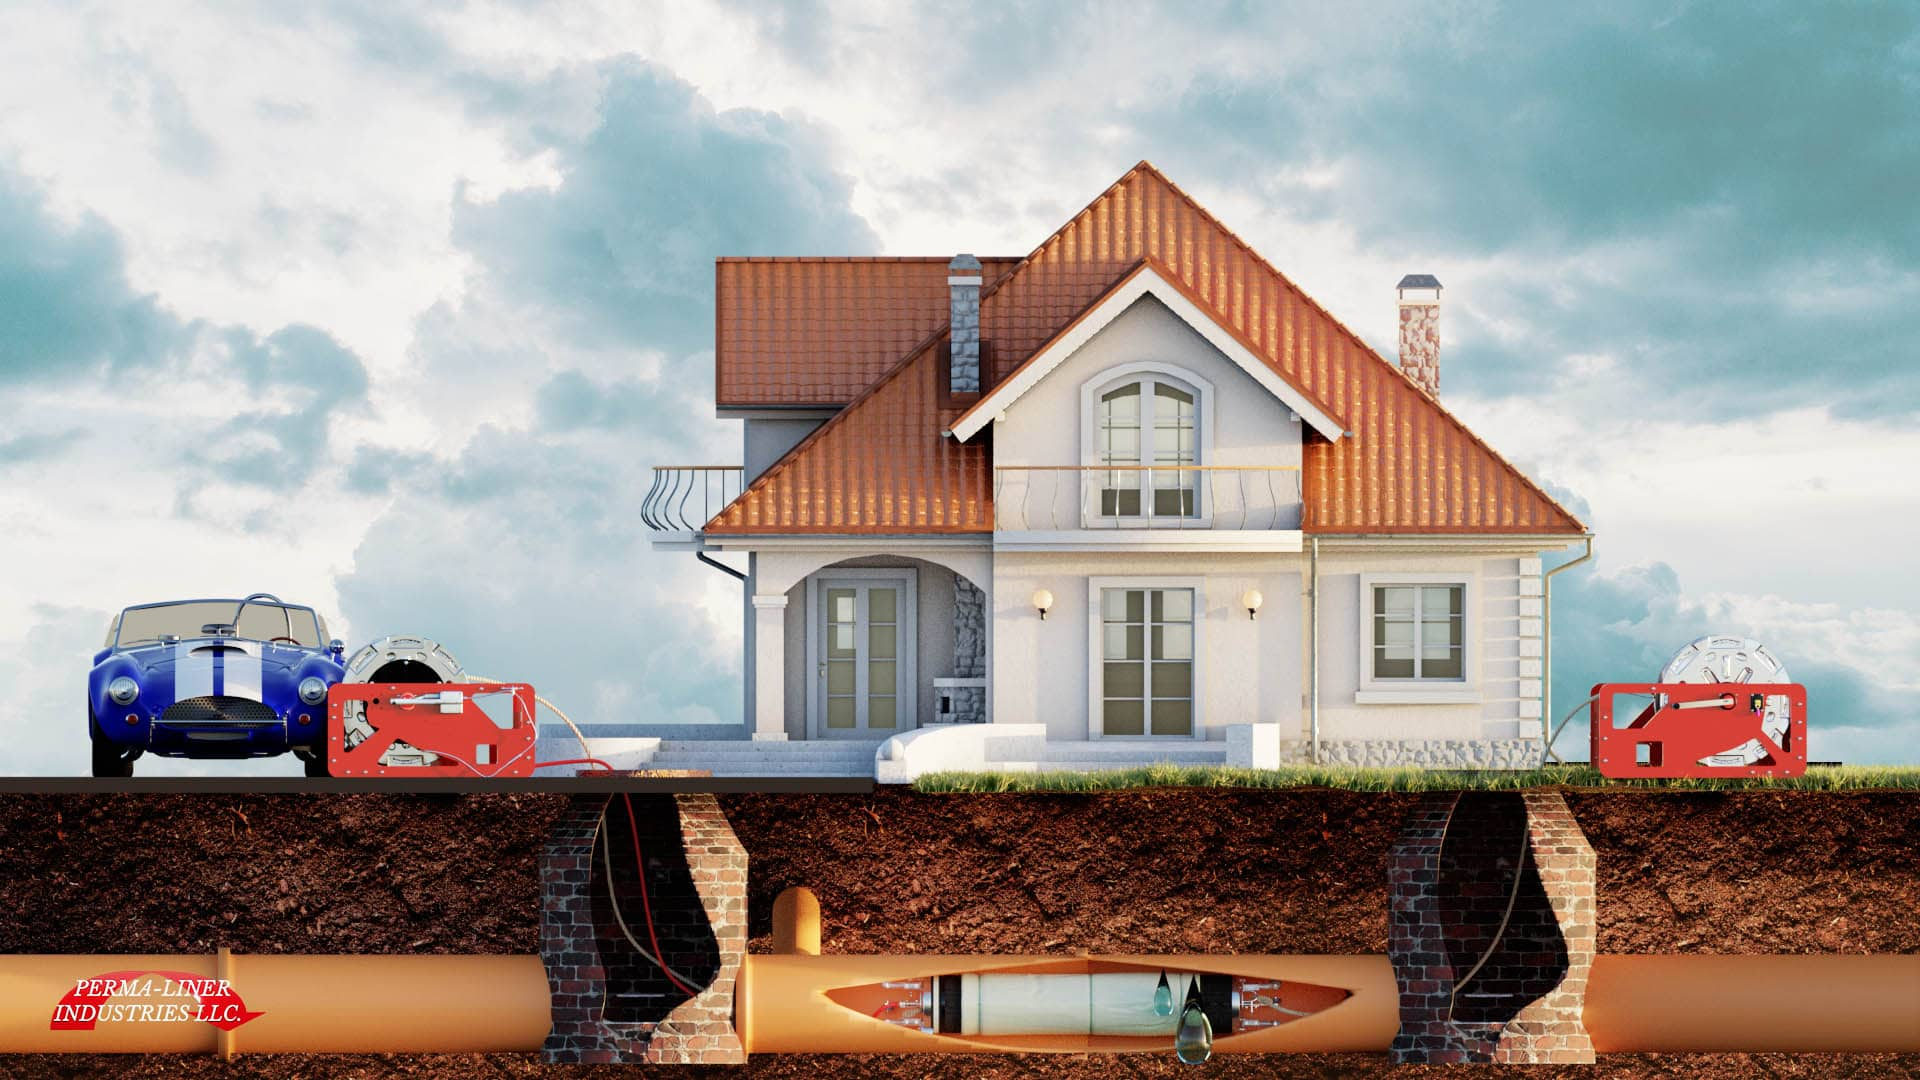 SECTIONAL-POINT-MAINLINE-SEWER-REPAIR